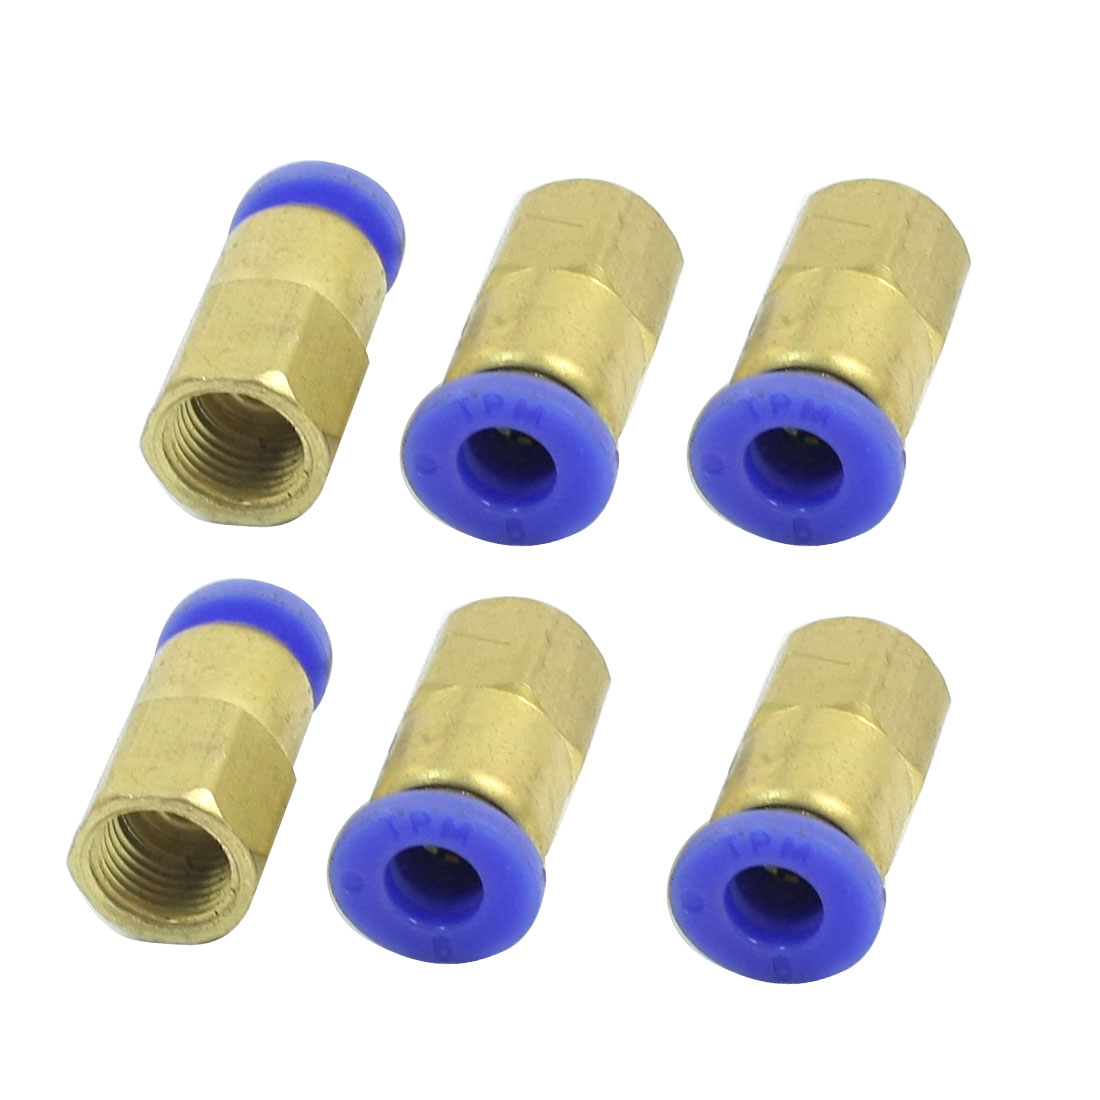 6Pcs 1/8PT Female Threaded to 6mm Push in Pipe Dia Air Pneumatic Straight Quick Coupler Fitting Connector